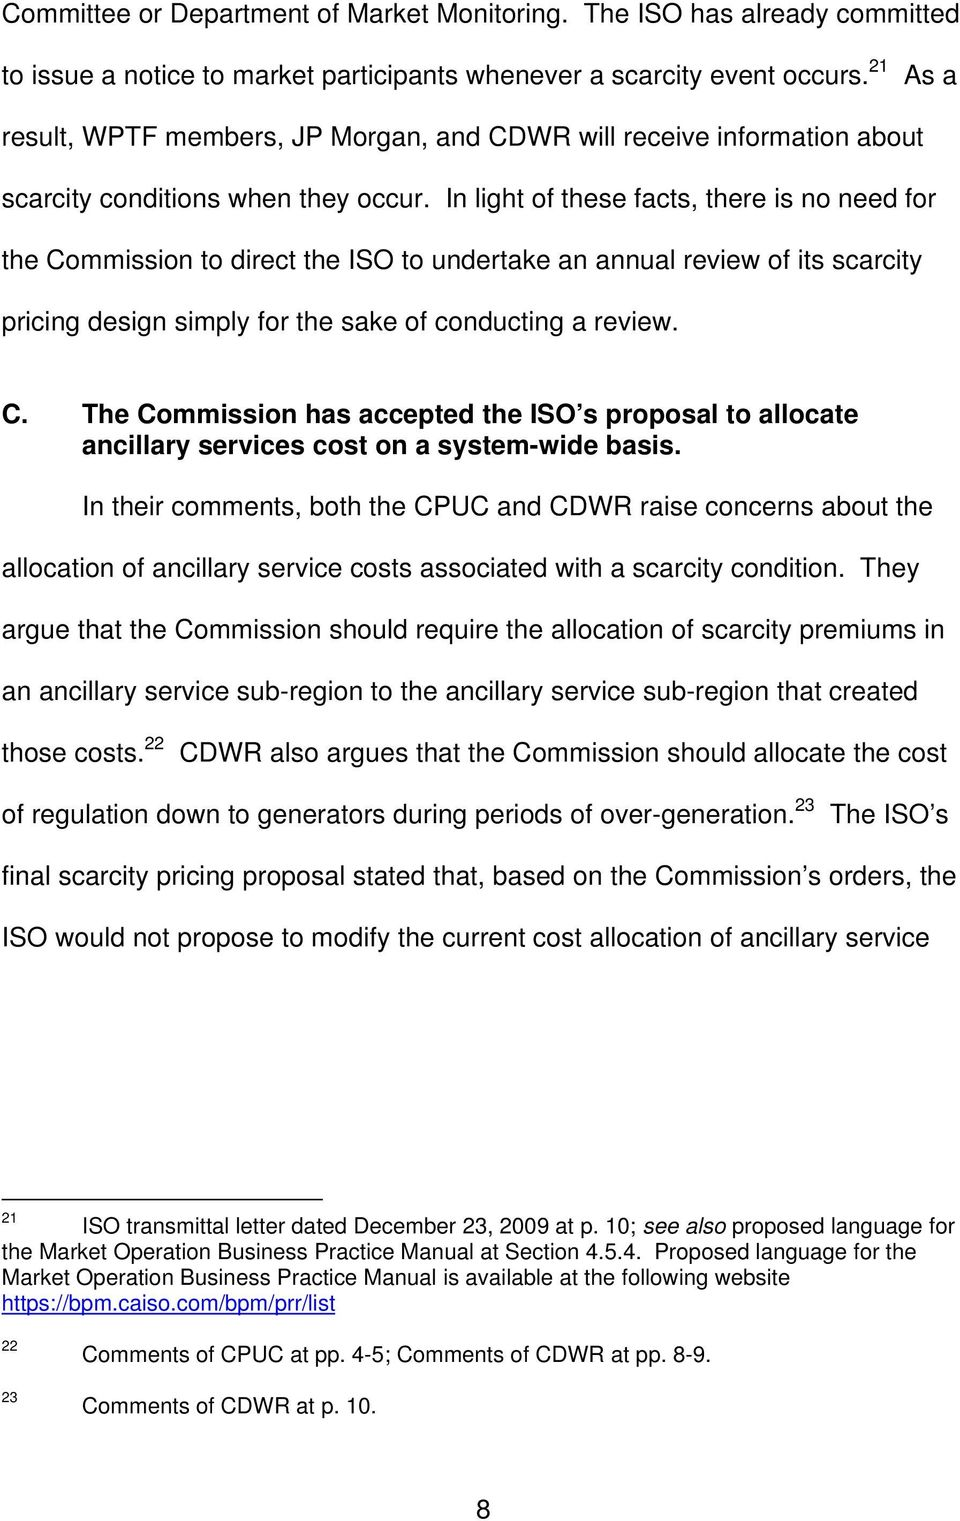 In light of these facts, there is no need for the Commission to direct the ISO to undertake an annual review of its scarcity pricing design simply for the sake of conducting a review. C. The Commission has accepted the ISO s proposal to allocate ancillary services cost on a system-wide basis.